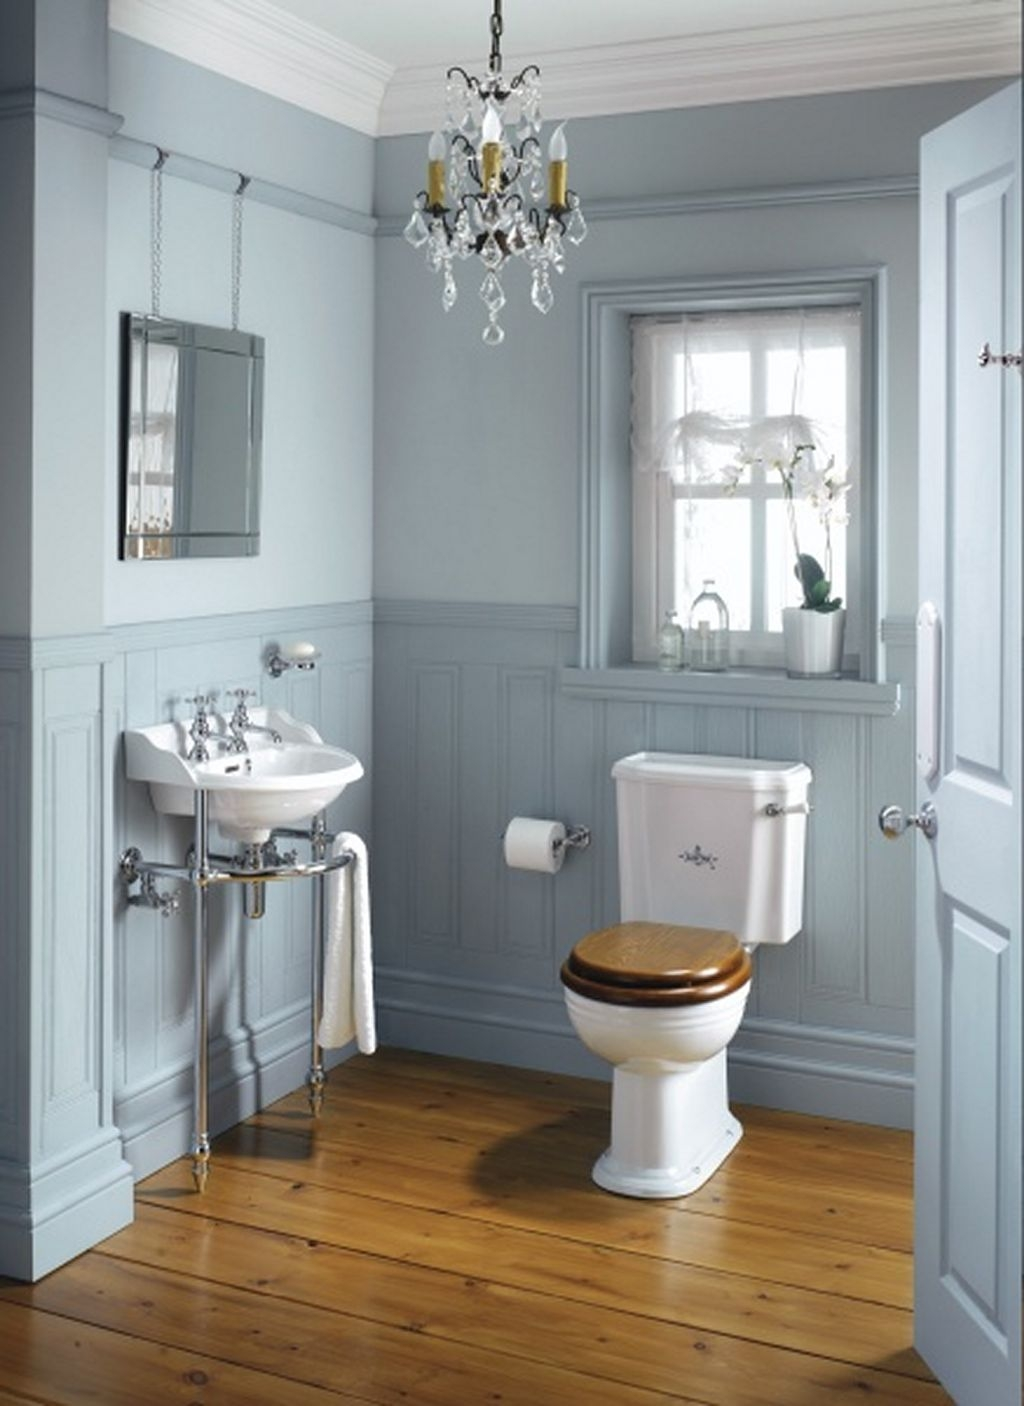 25 Beach Style Bathroom Design Ideas Bathrooms Decor Toilets With Victorian Style Mirrors For Bathrooms (Image 1 of 15)